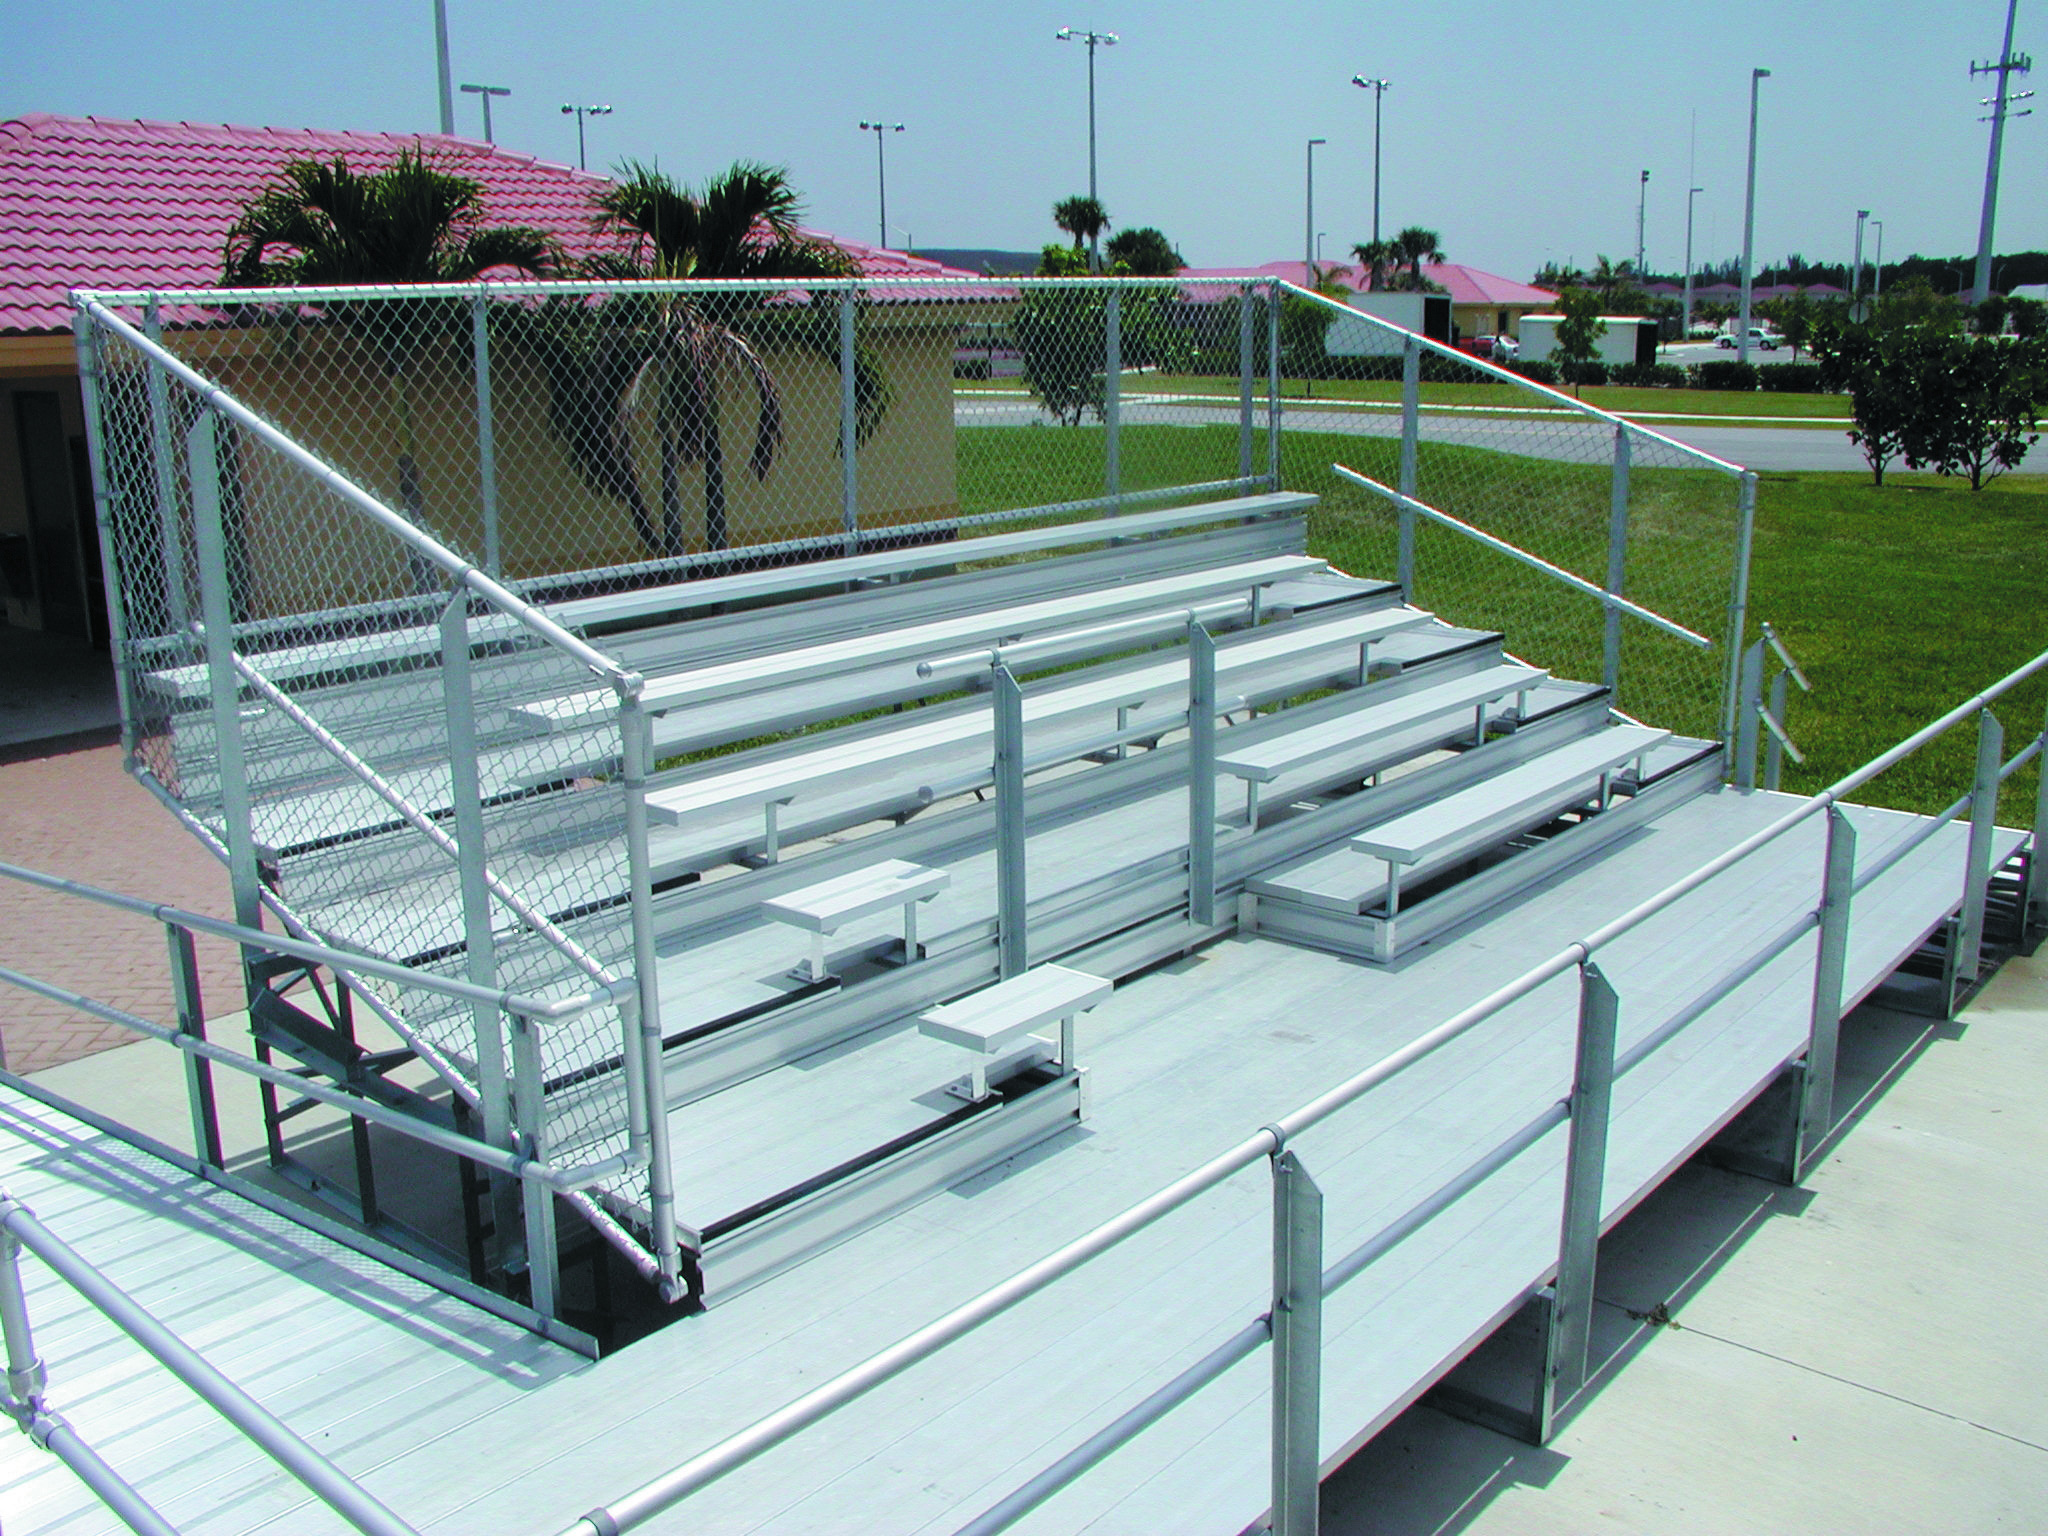 Elevated-5-Row-with-ADA.jpeg#asset:111752